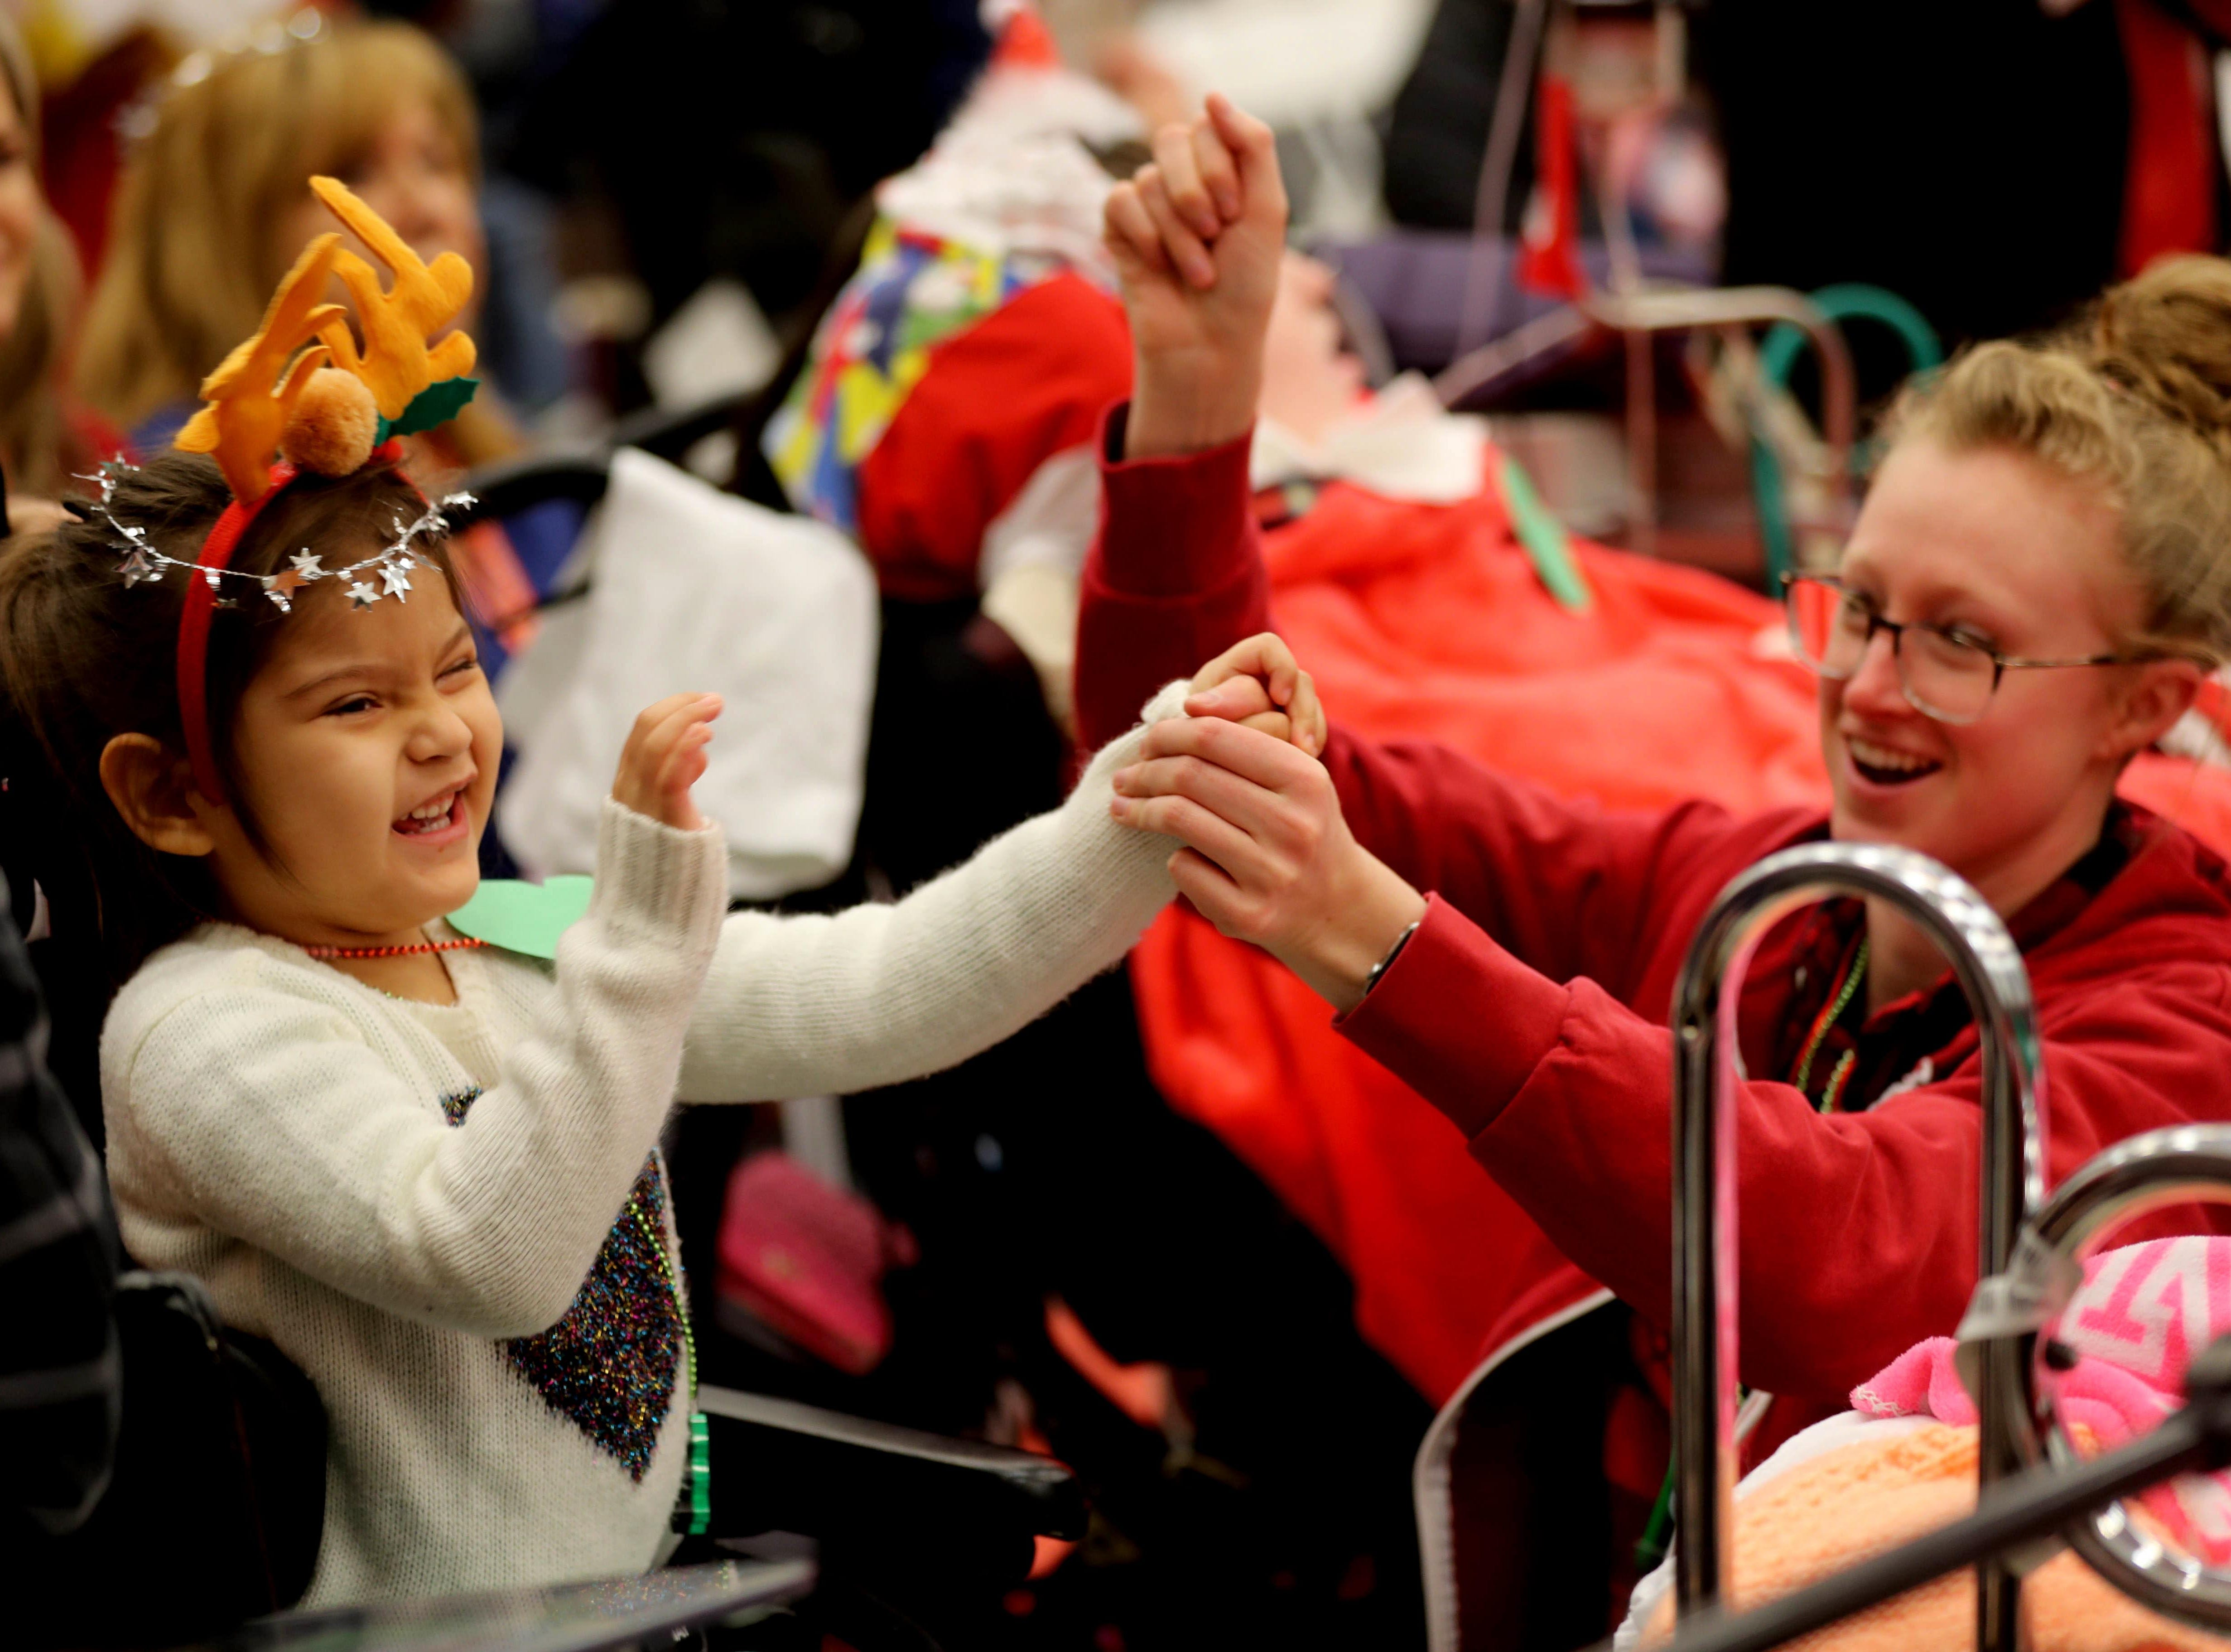 Daniela Hernandez, 5, a patient at Blythedale Children's Hospital in Valhalla, enjoys holiday music with recreation therapist Laura Wallace during the annual holiday show at the hospital Dec. 14, 2018. Scott Shannon, morning disc jockey with WCBS-FM hosts the show every year. This year's show included performances by Rob Thomas of Matchbox Twenty, Mark Rivera, who is Billy Joel's longtime saxophonist, and Grammy nominated singer and songwriter Gavin DeGraw. The event included a live auction that featured autographed guitars by Jon Bon Jovi and Rob Thomas and tickets to a Billy Joel concert at Madison Square Garden.